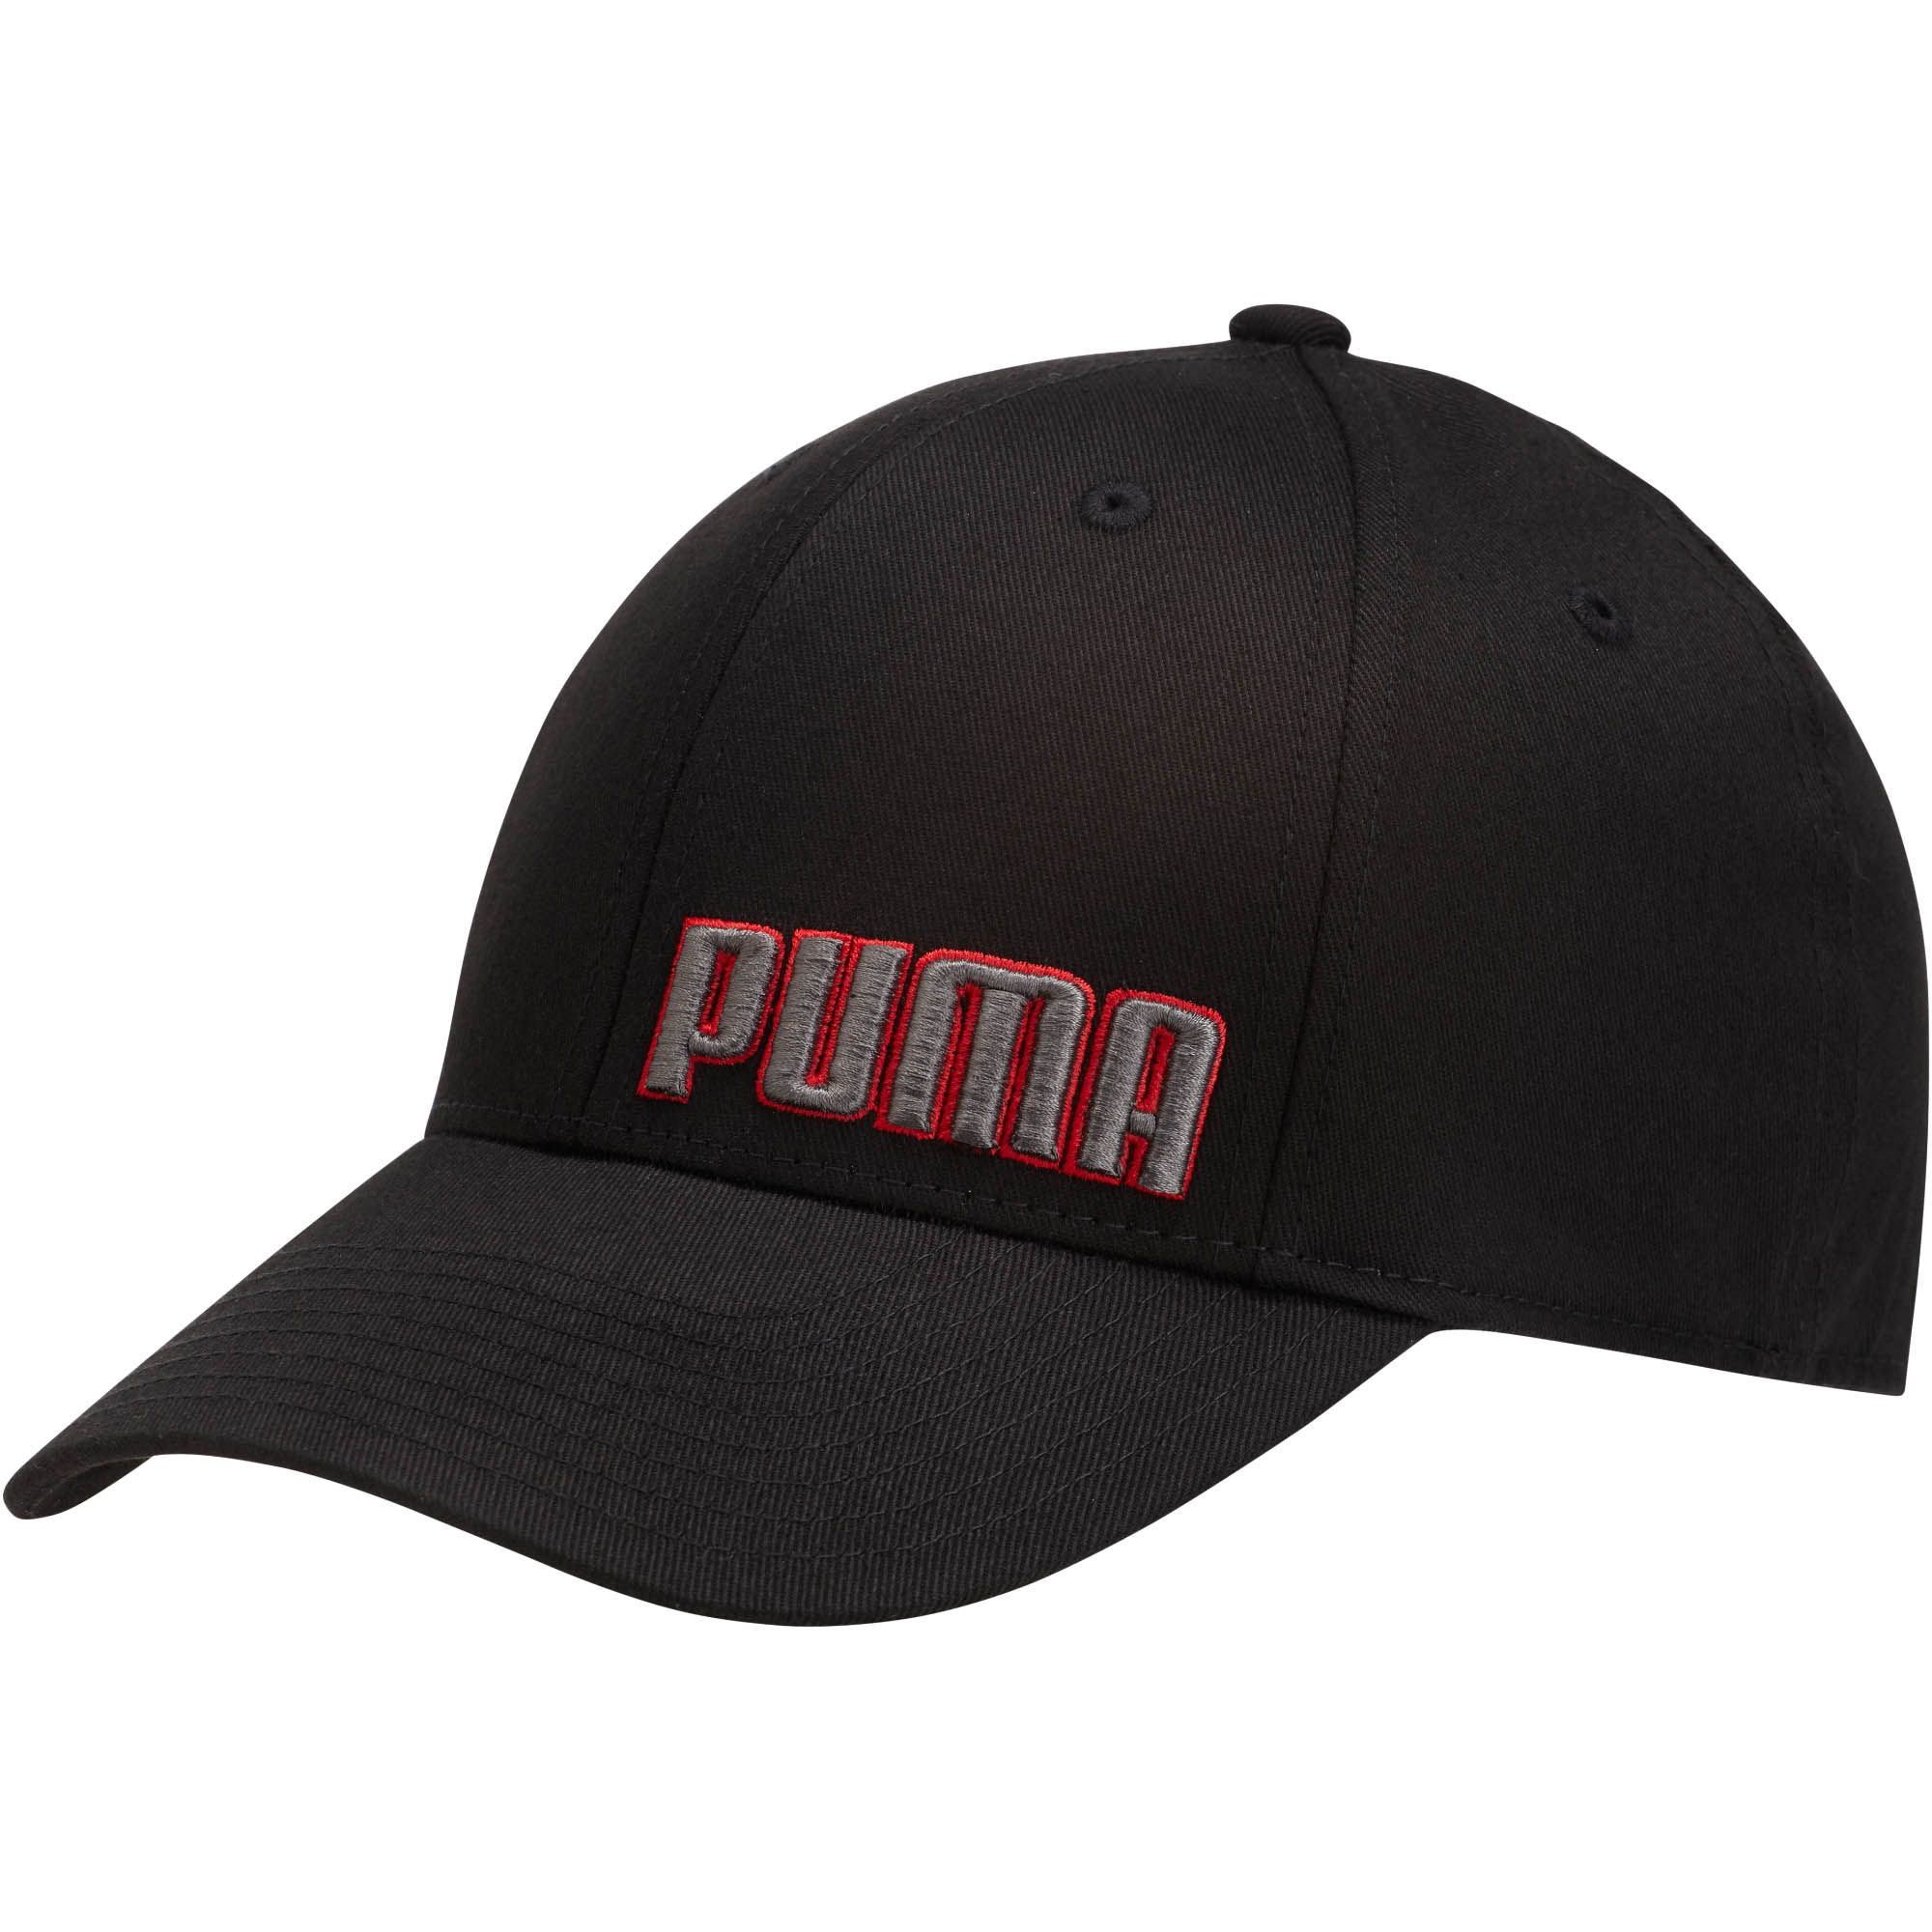 723d3a3c115 Lyst - PUMA Gridlock Stretch Fitted Hat in Black for Men